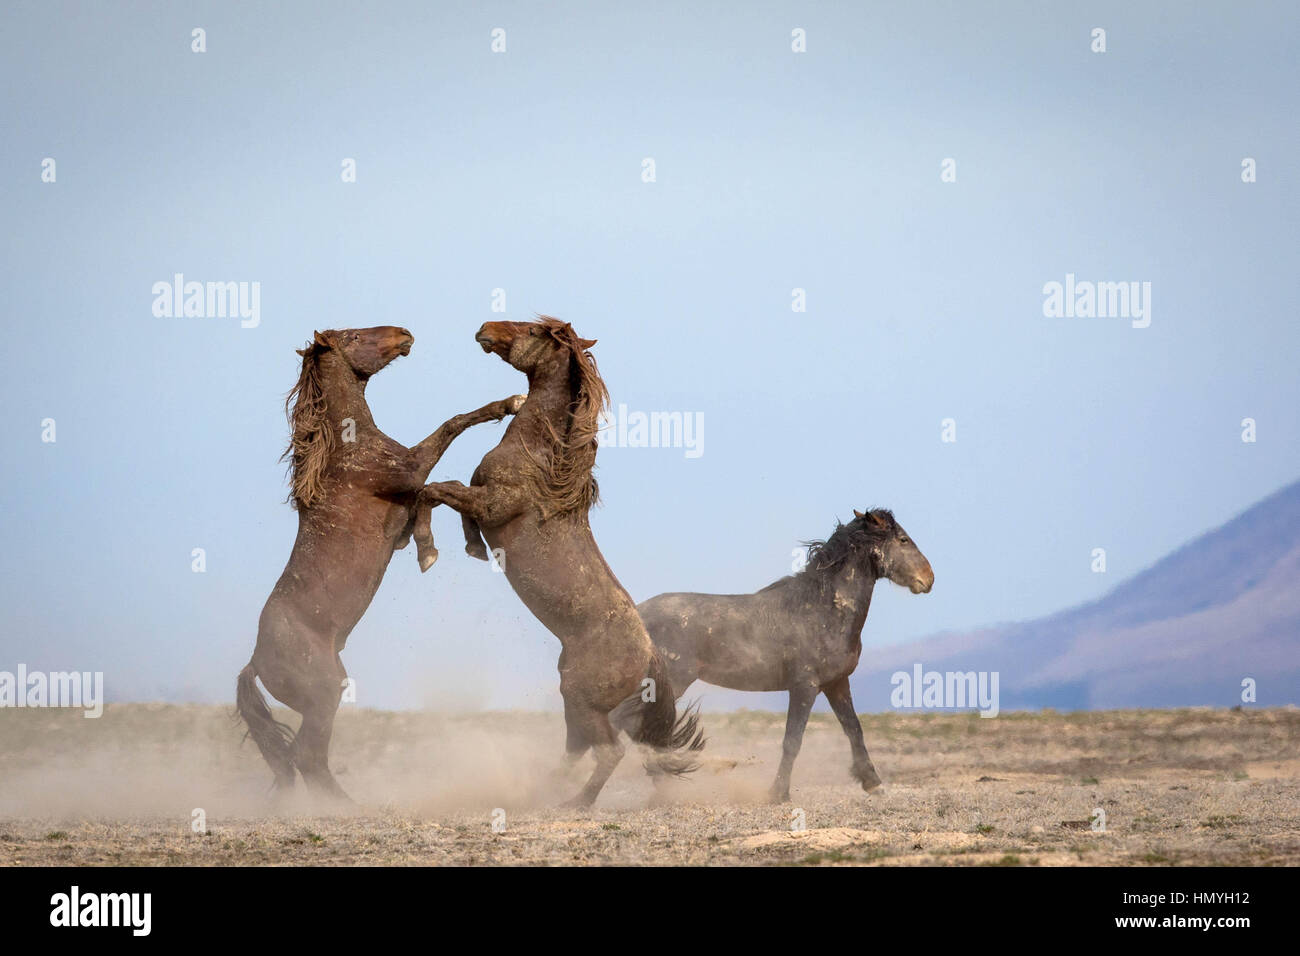 Stock Photo Wild Horses Sparring (equus ferus) in West Desert, Utah, USA, North America - Stock Image